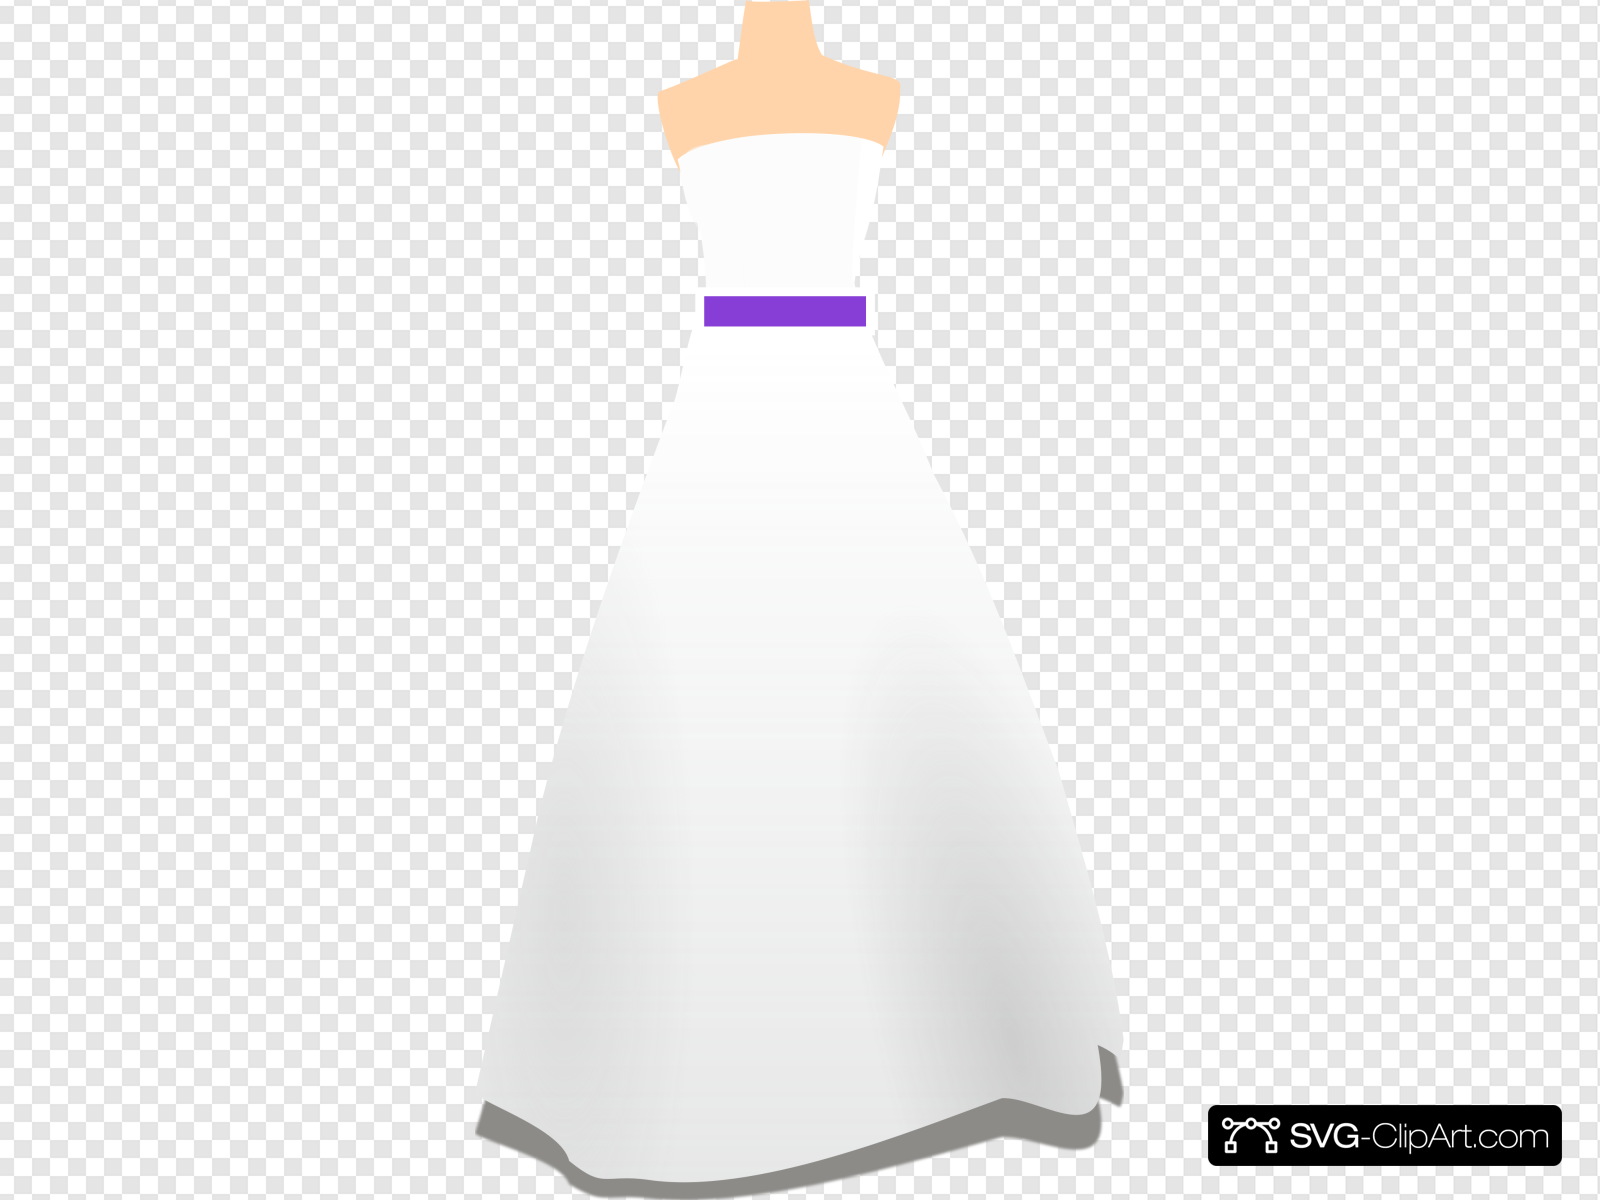 Simple Purple Wedding Dress Clip art, Icon and SVG.